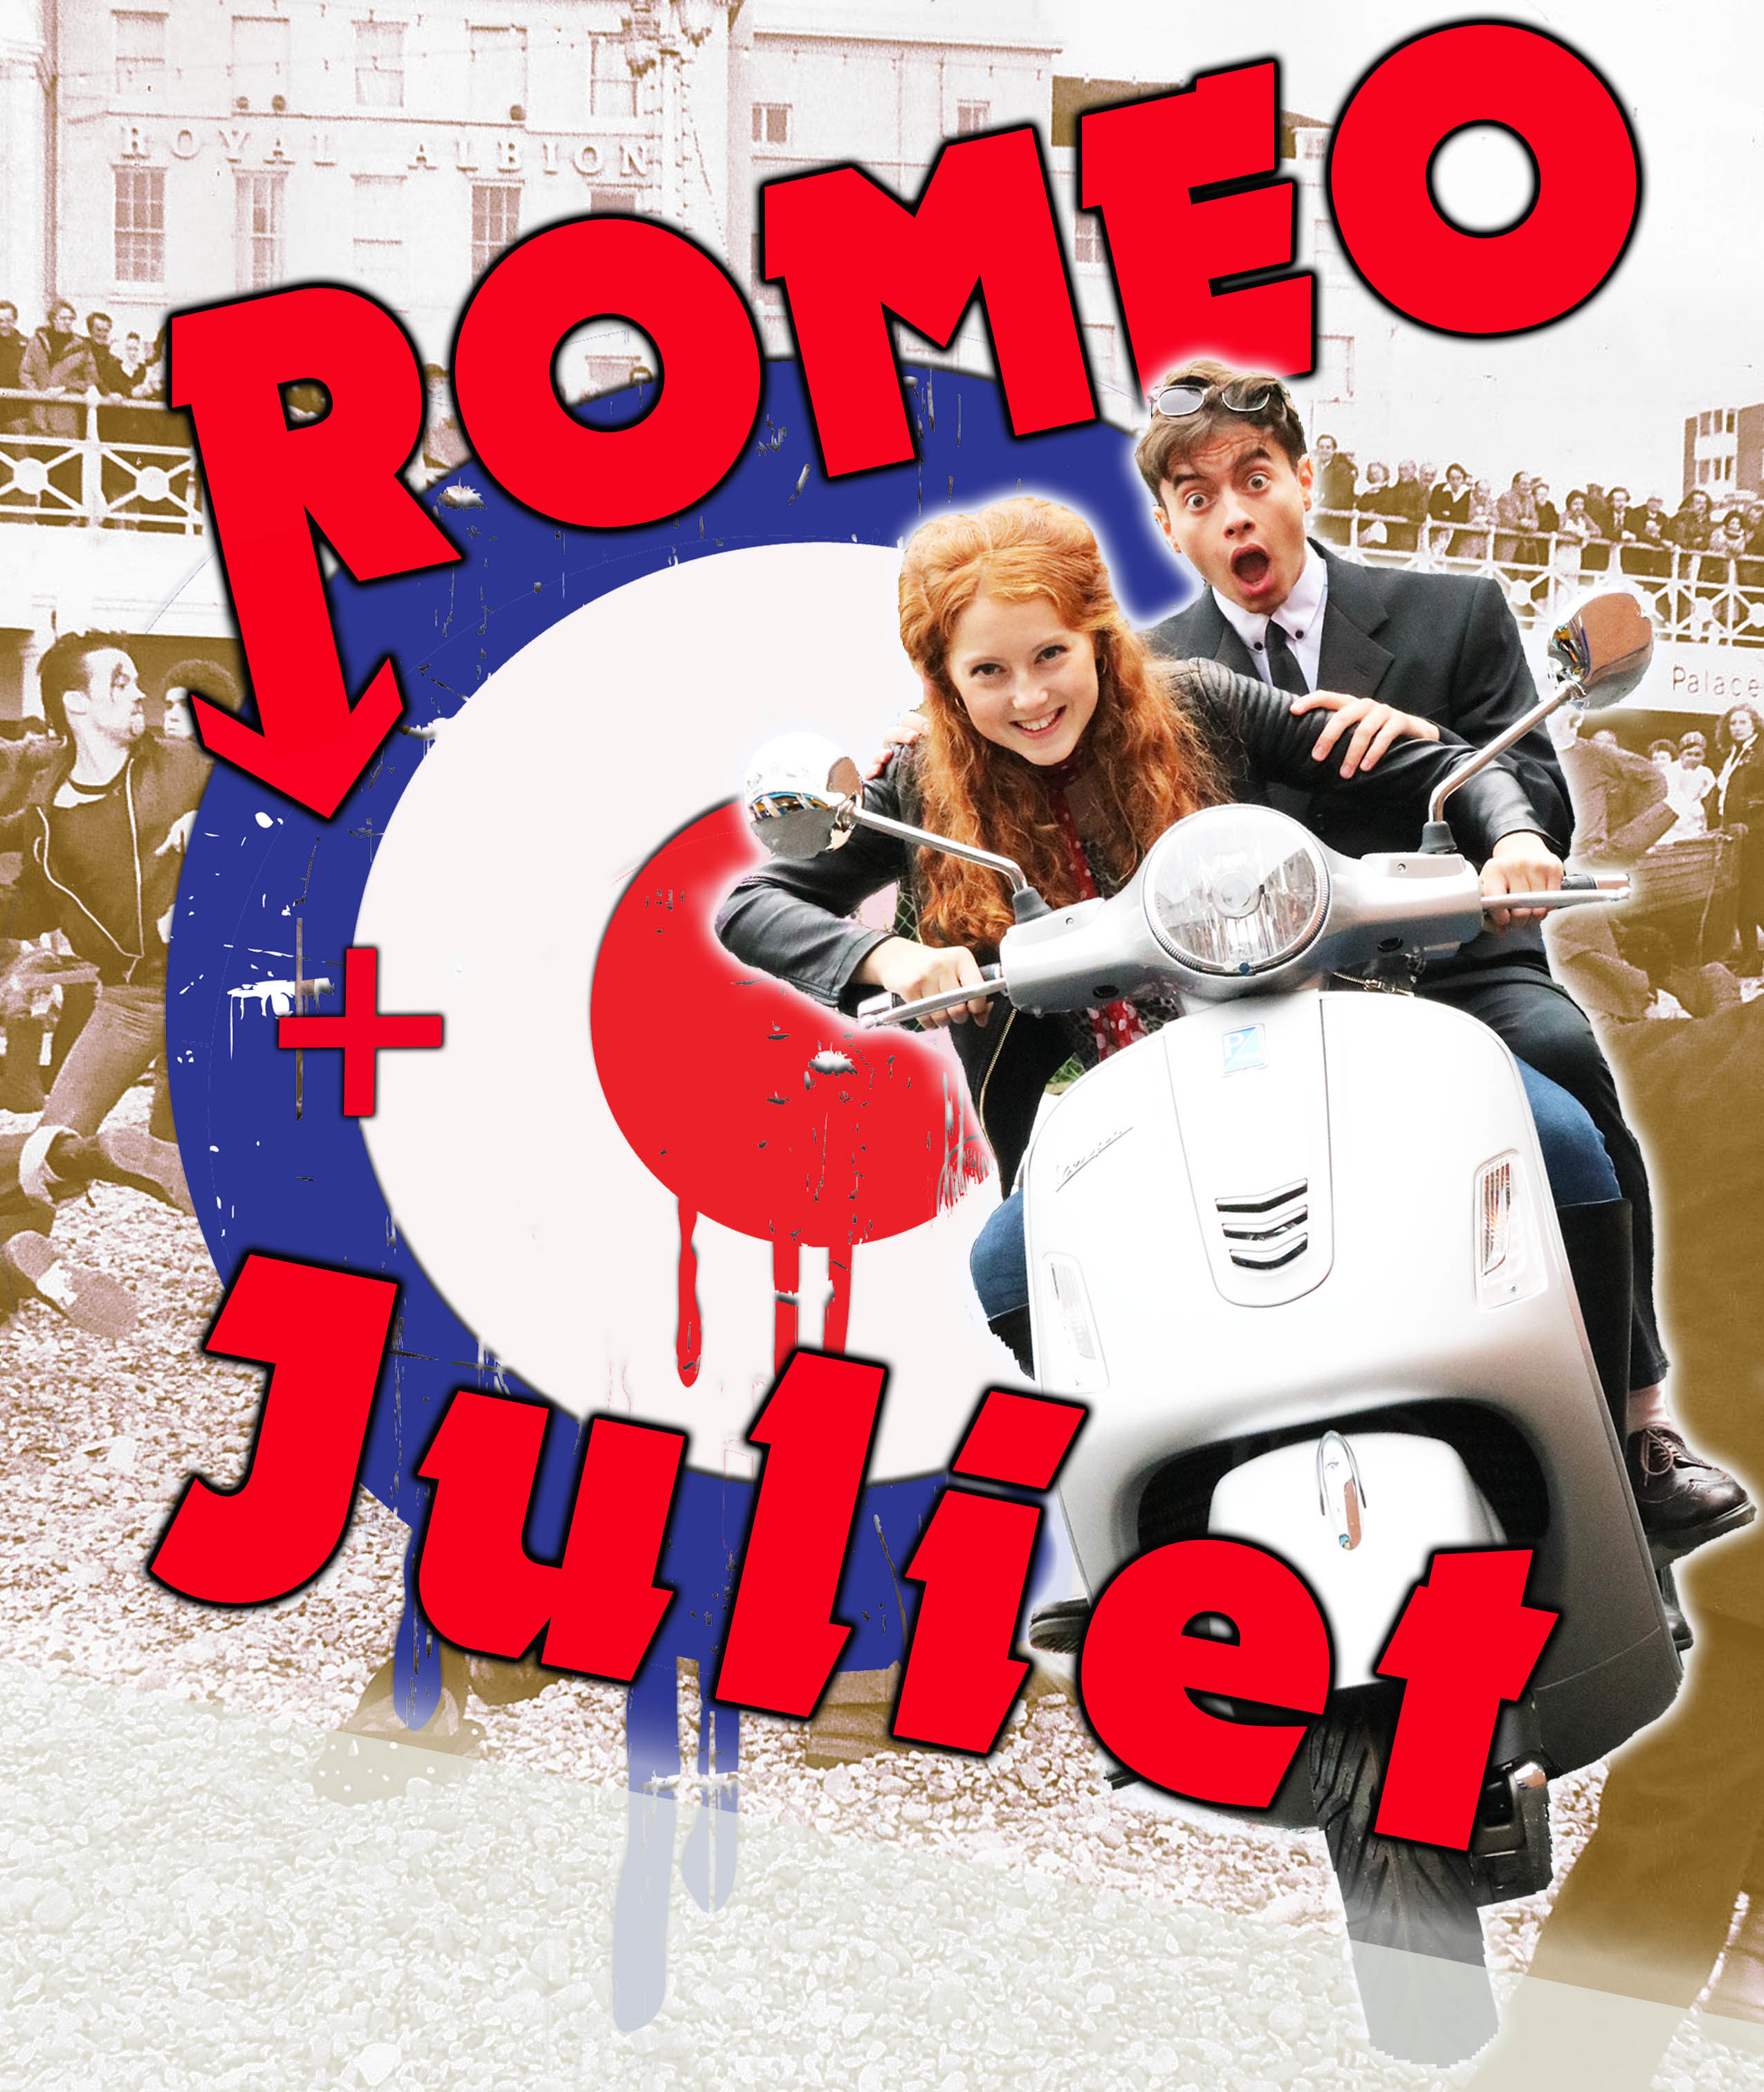 Romeo and Juliet Penlee Park Open Air Theatre competition